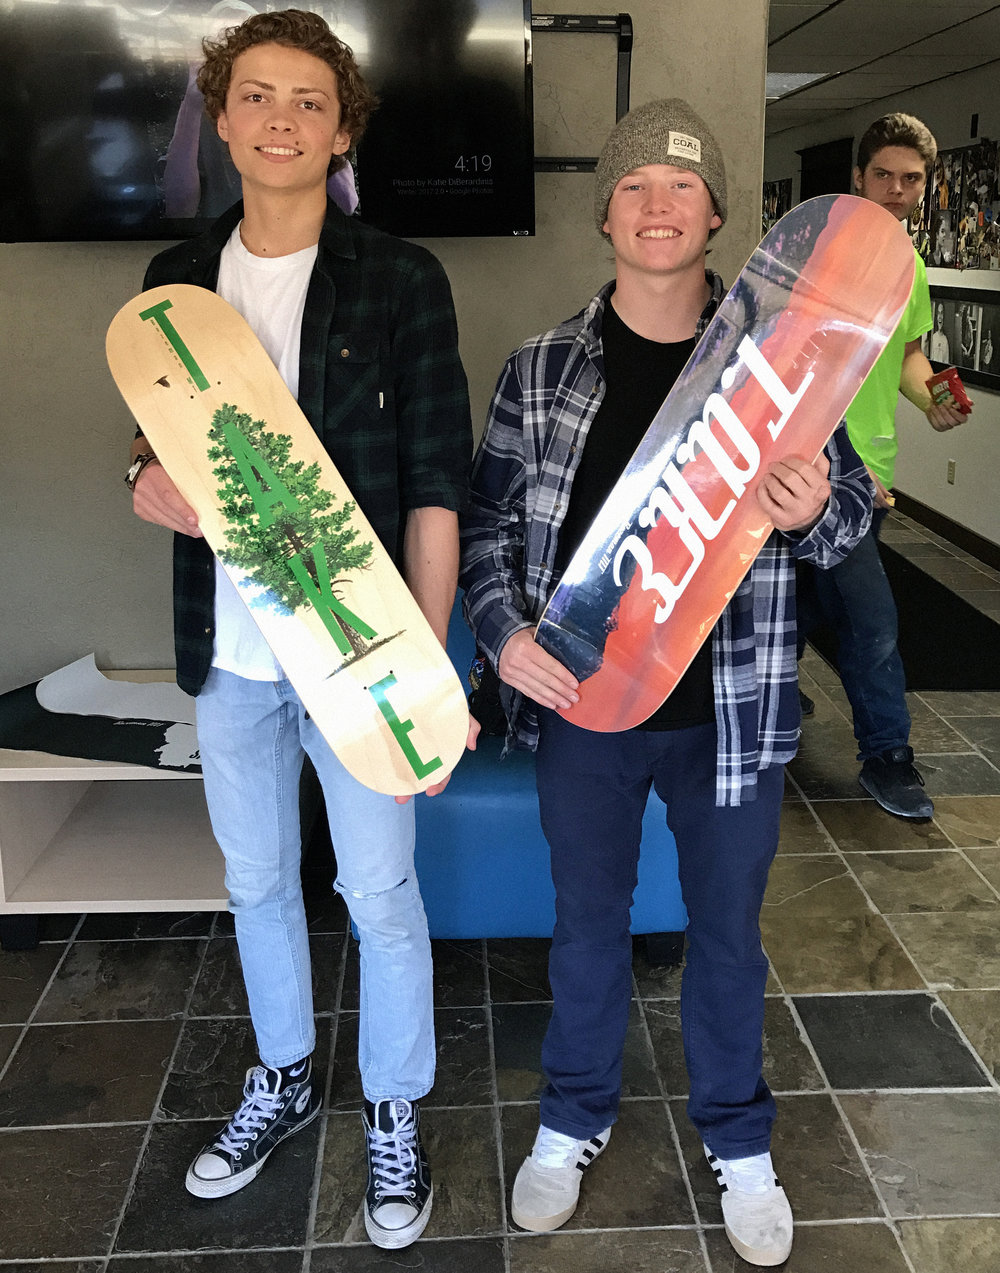 TAKE Skateboards. Bozeman, Montana grown. BYEP powered.